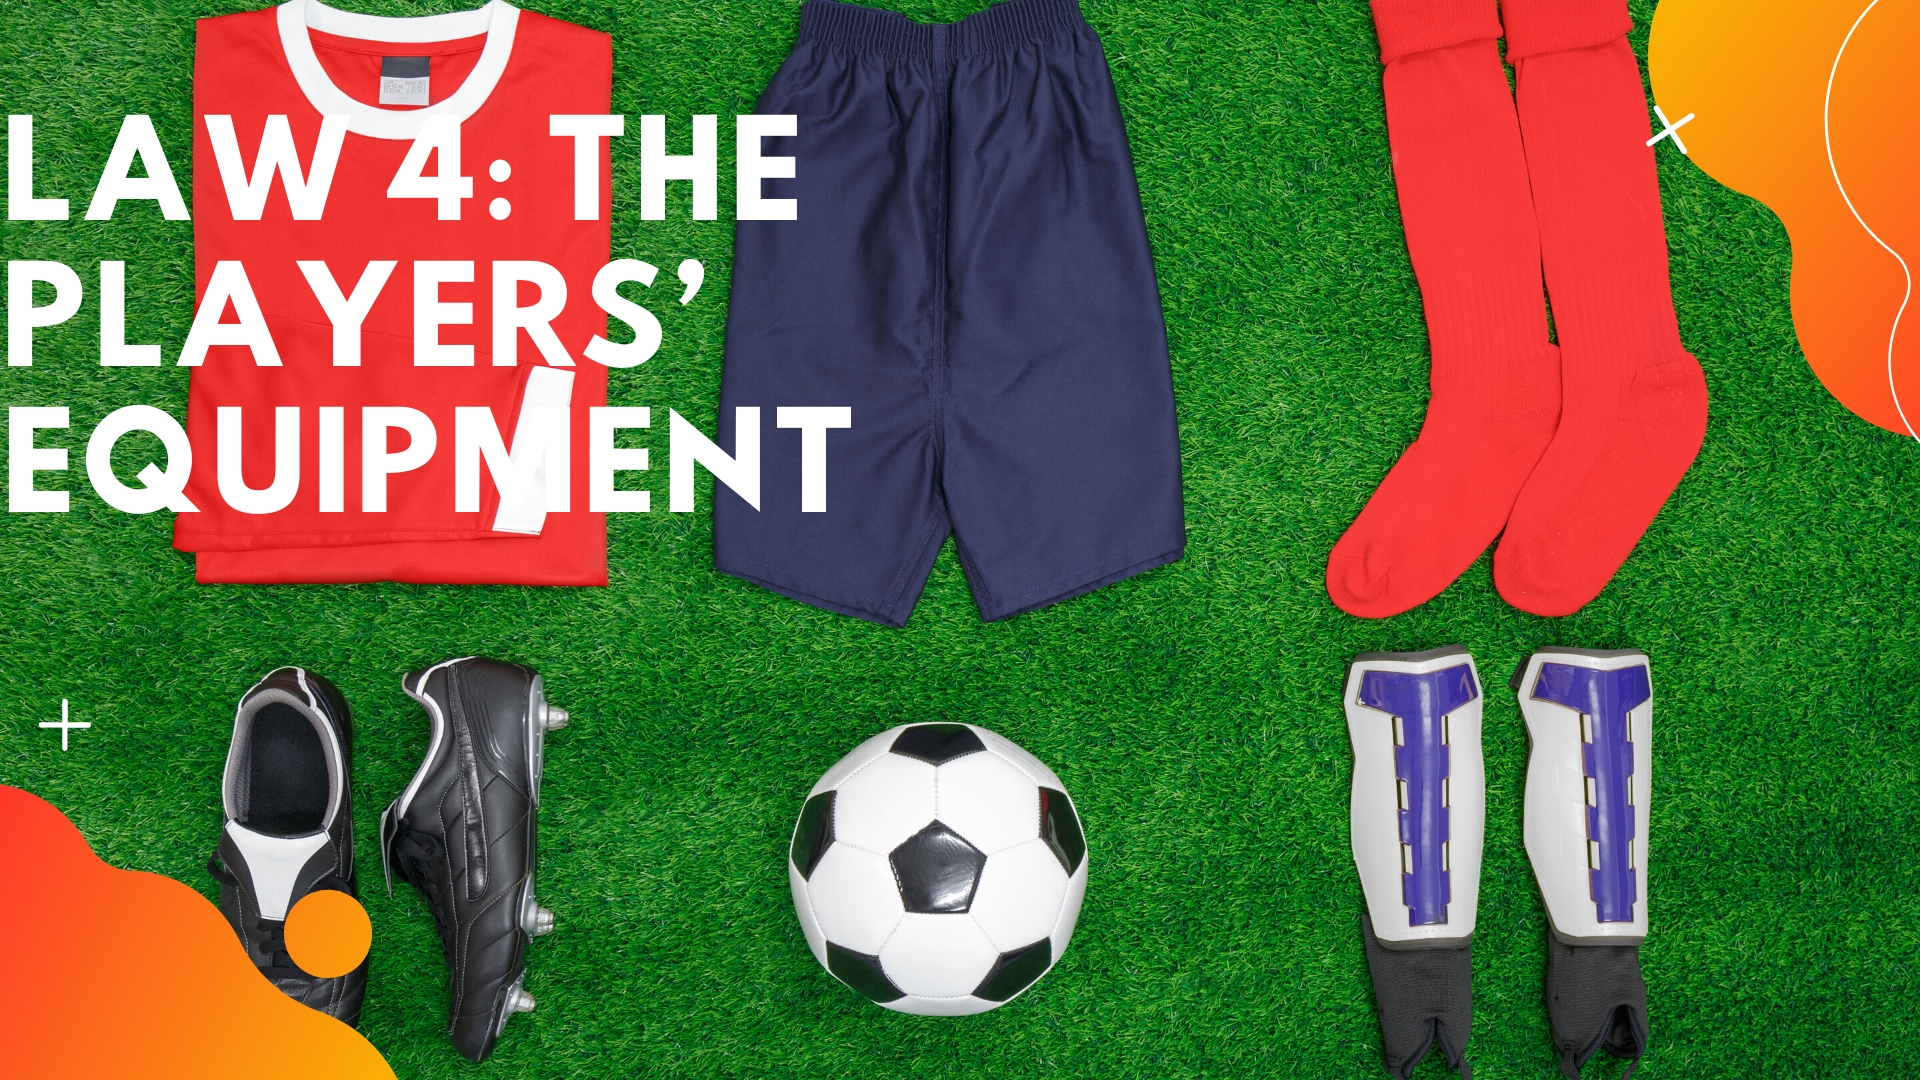 Law 4 The Players' Equipment